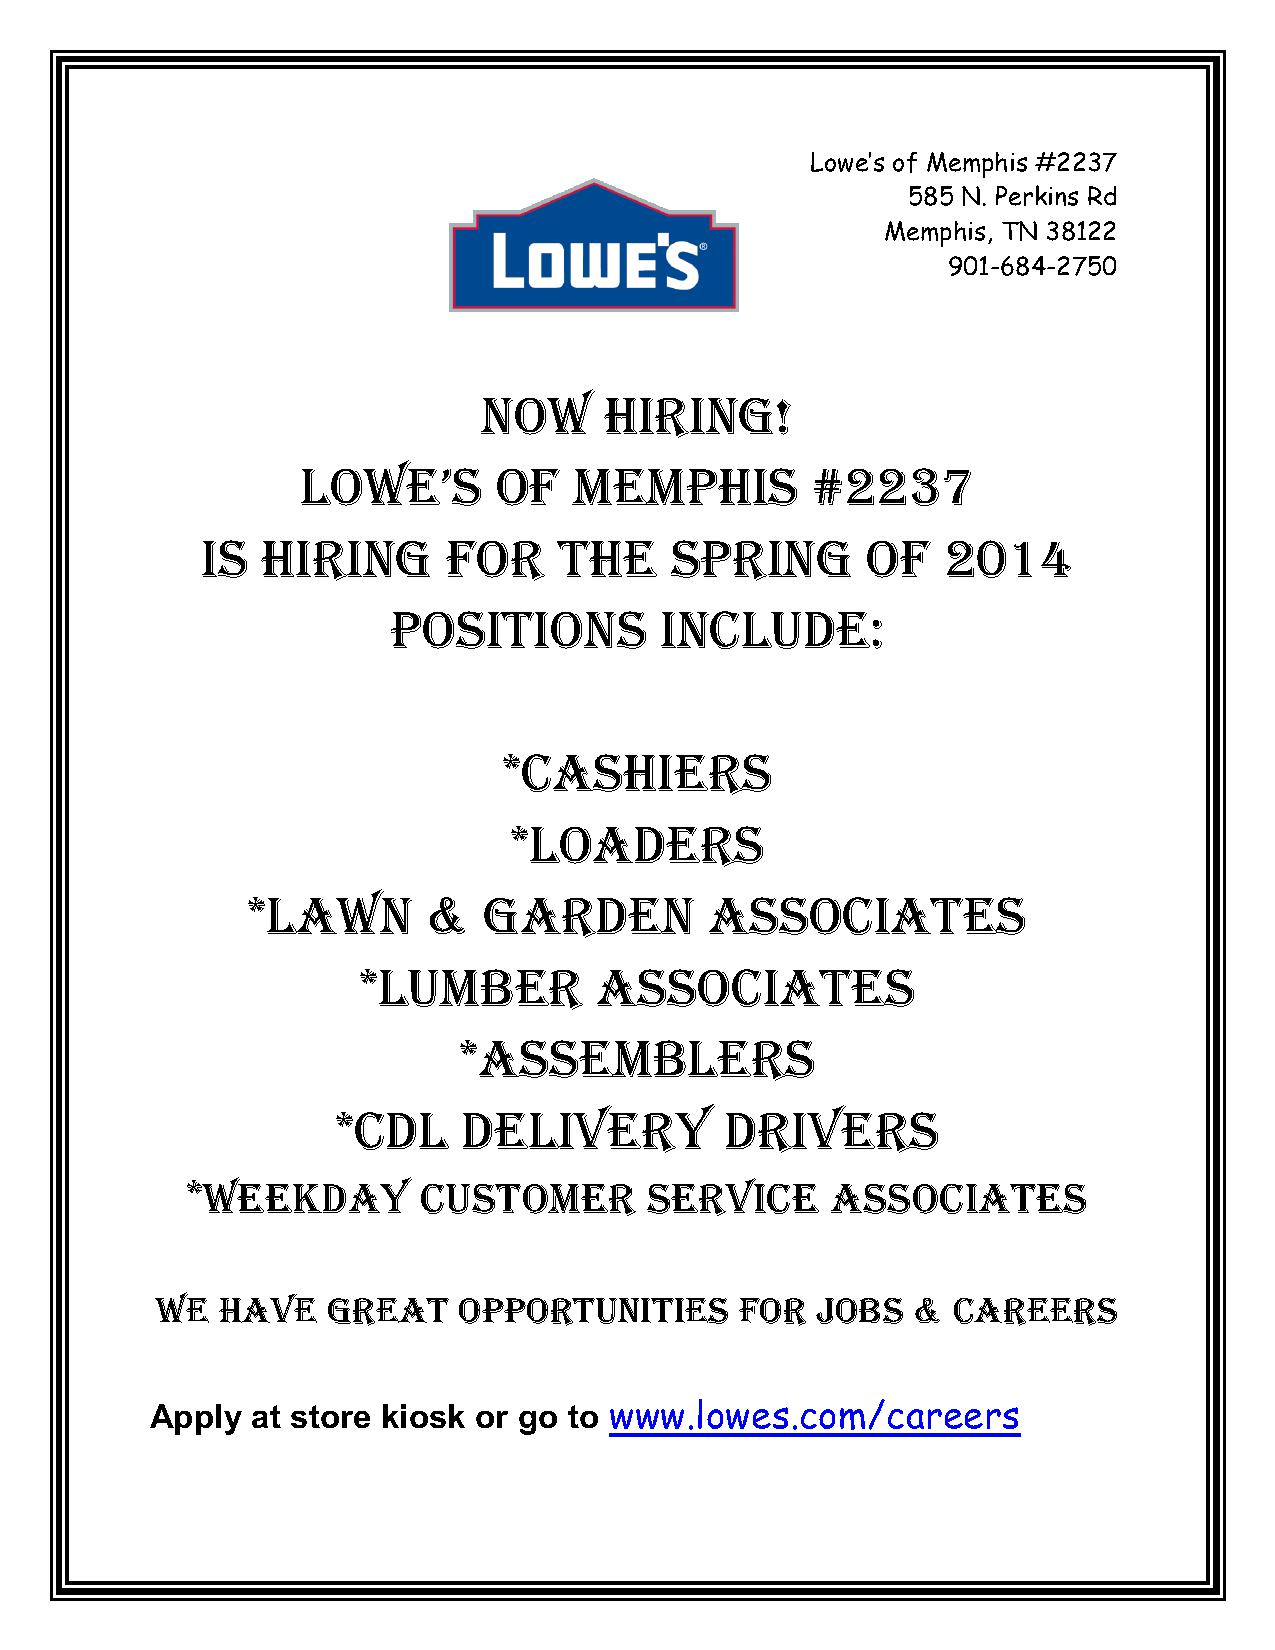 Lowes Of Memphis Is Hiring Job Career News From The Memphis Public Libraries